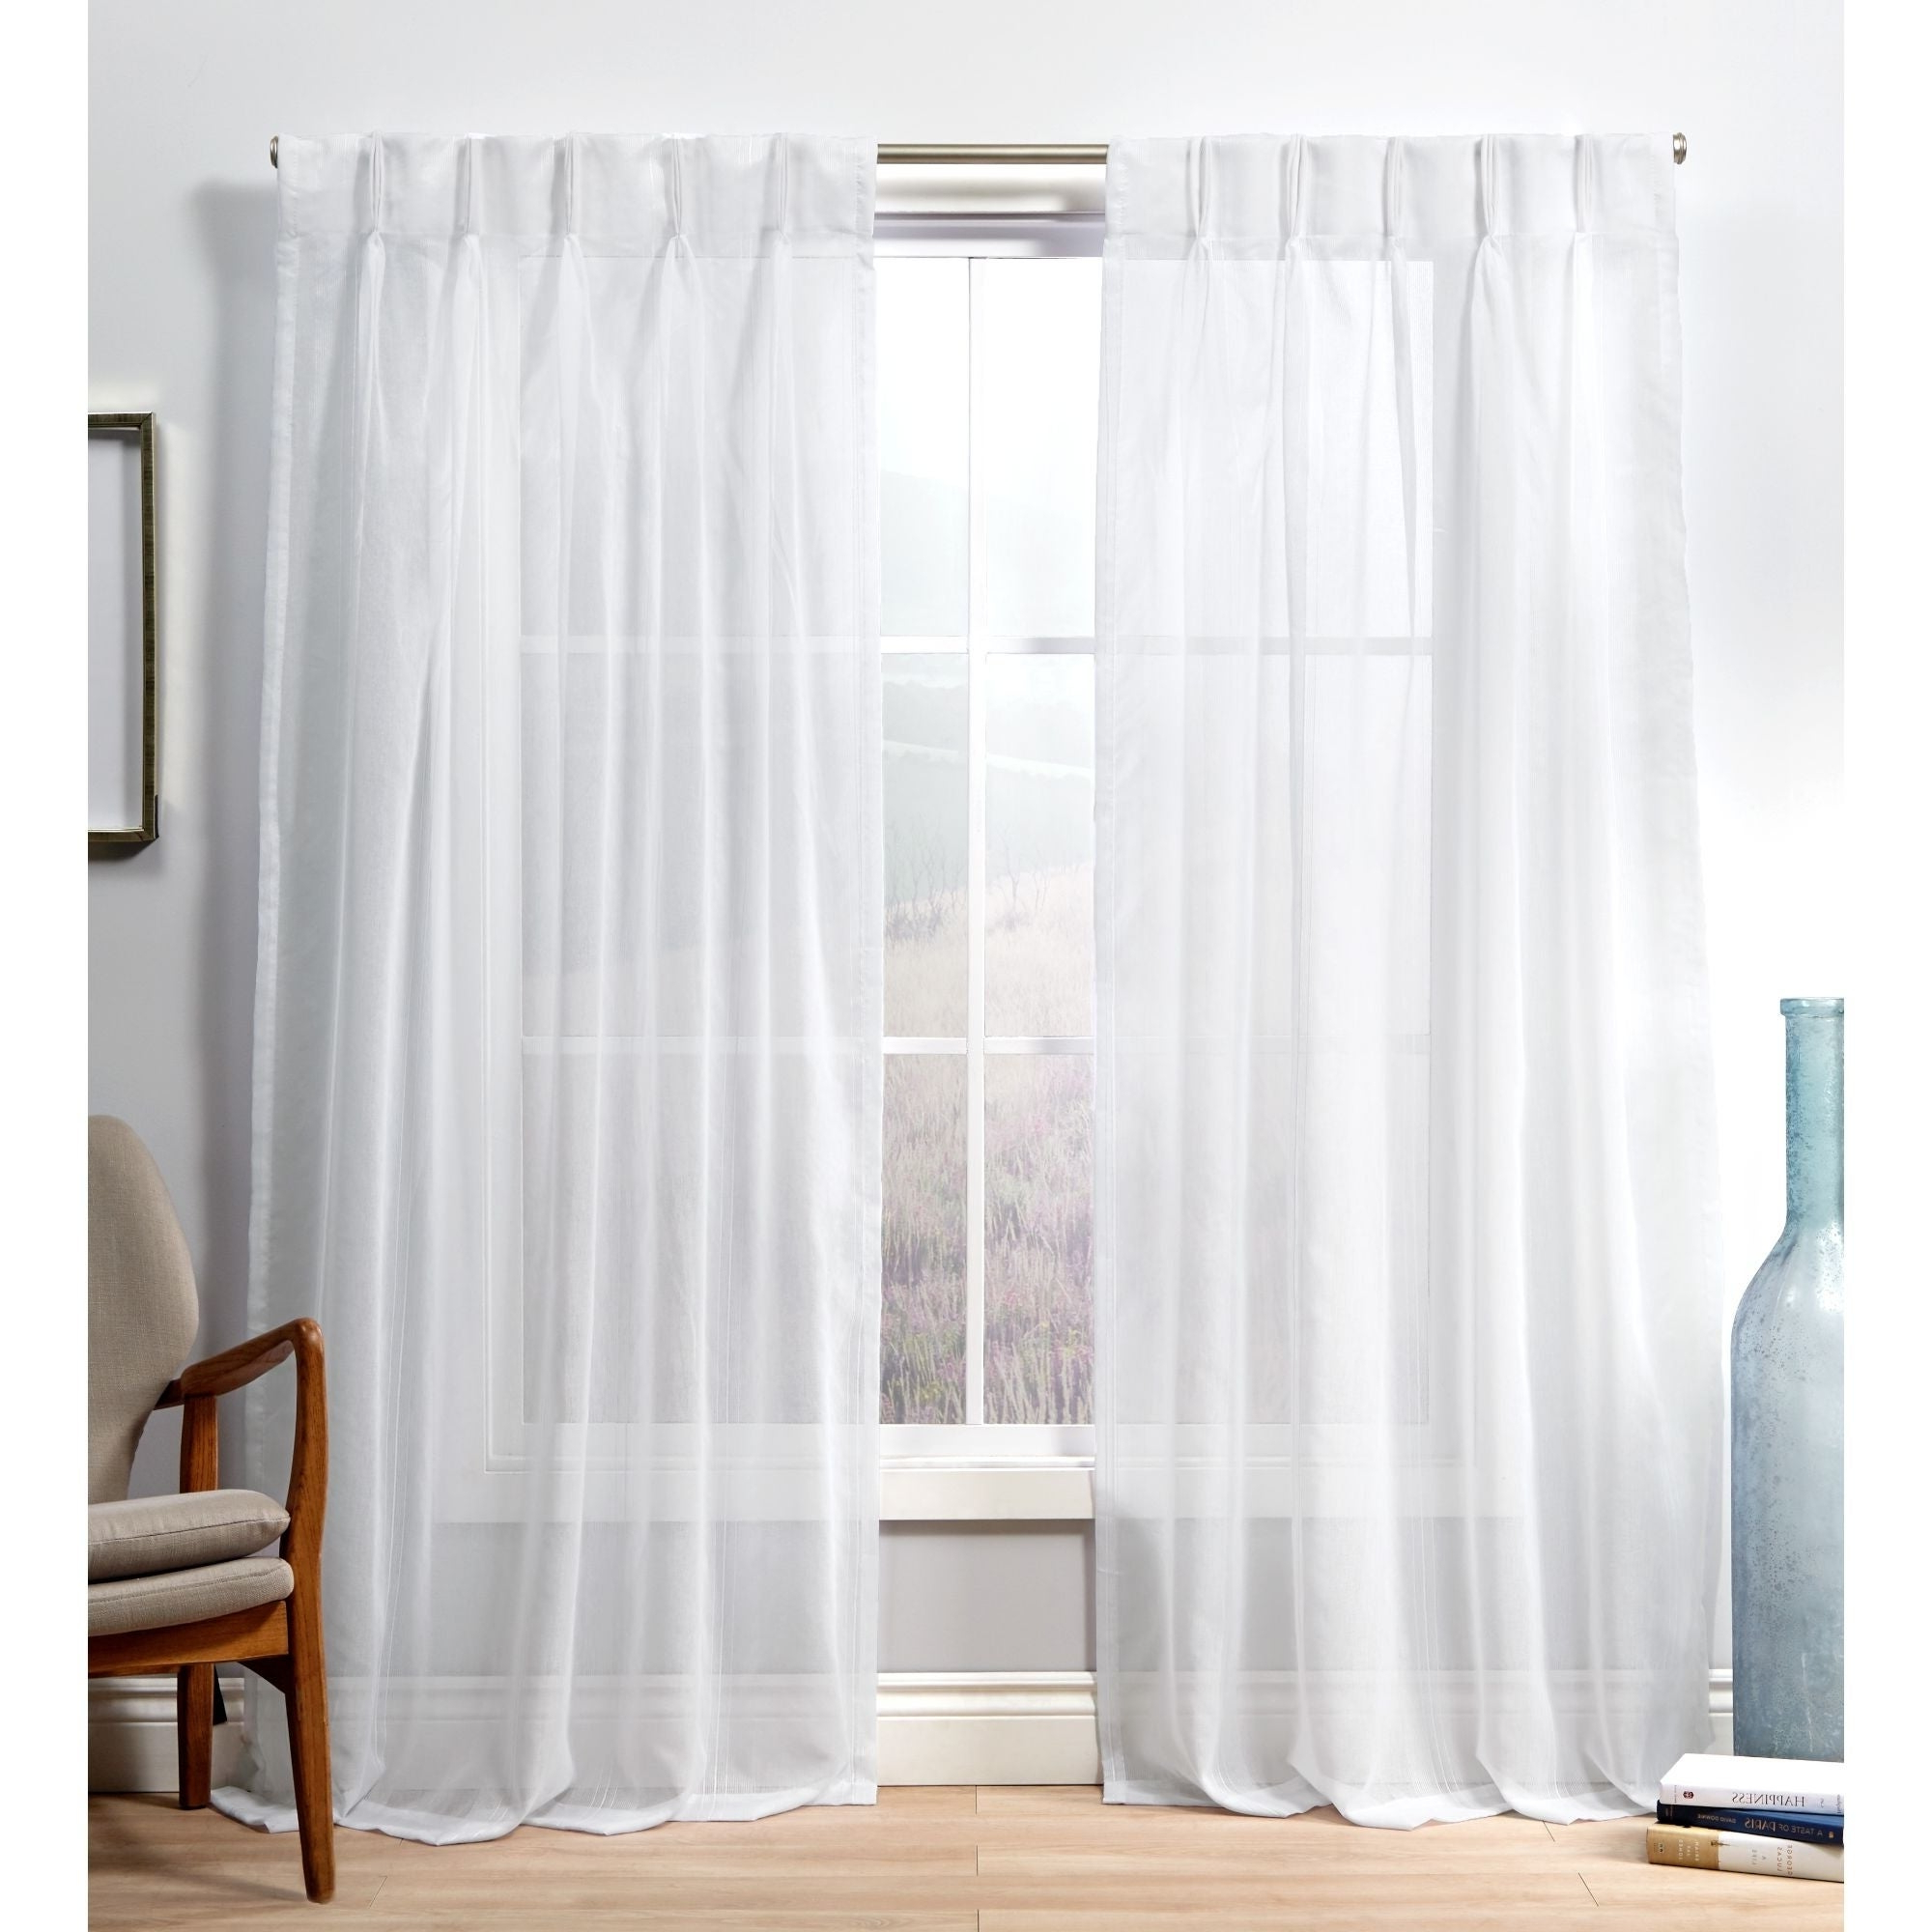 Popular Ati Home Penny Sheer Pinch Pleat Curtain Panel Pair For Double Pinch Pleat Top Curtain Panel Pairs (View 18 of 20)